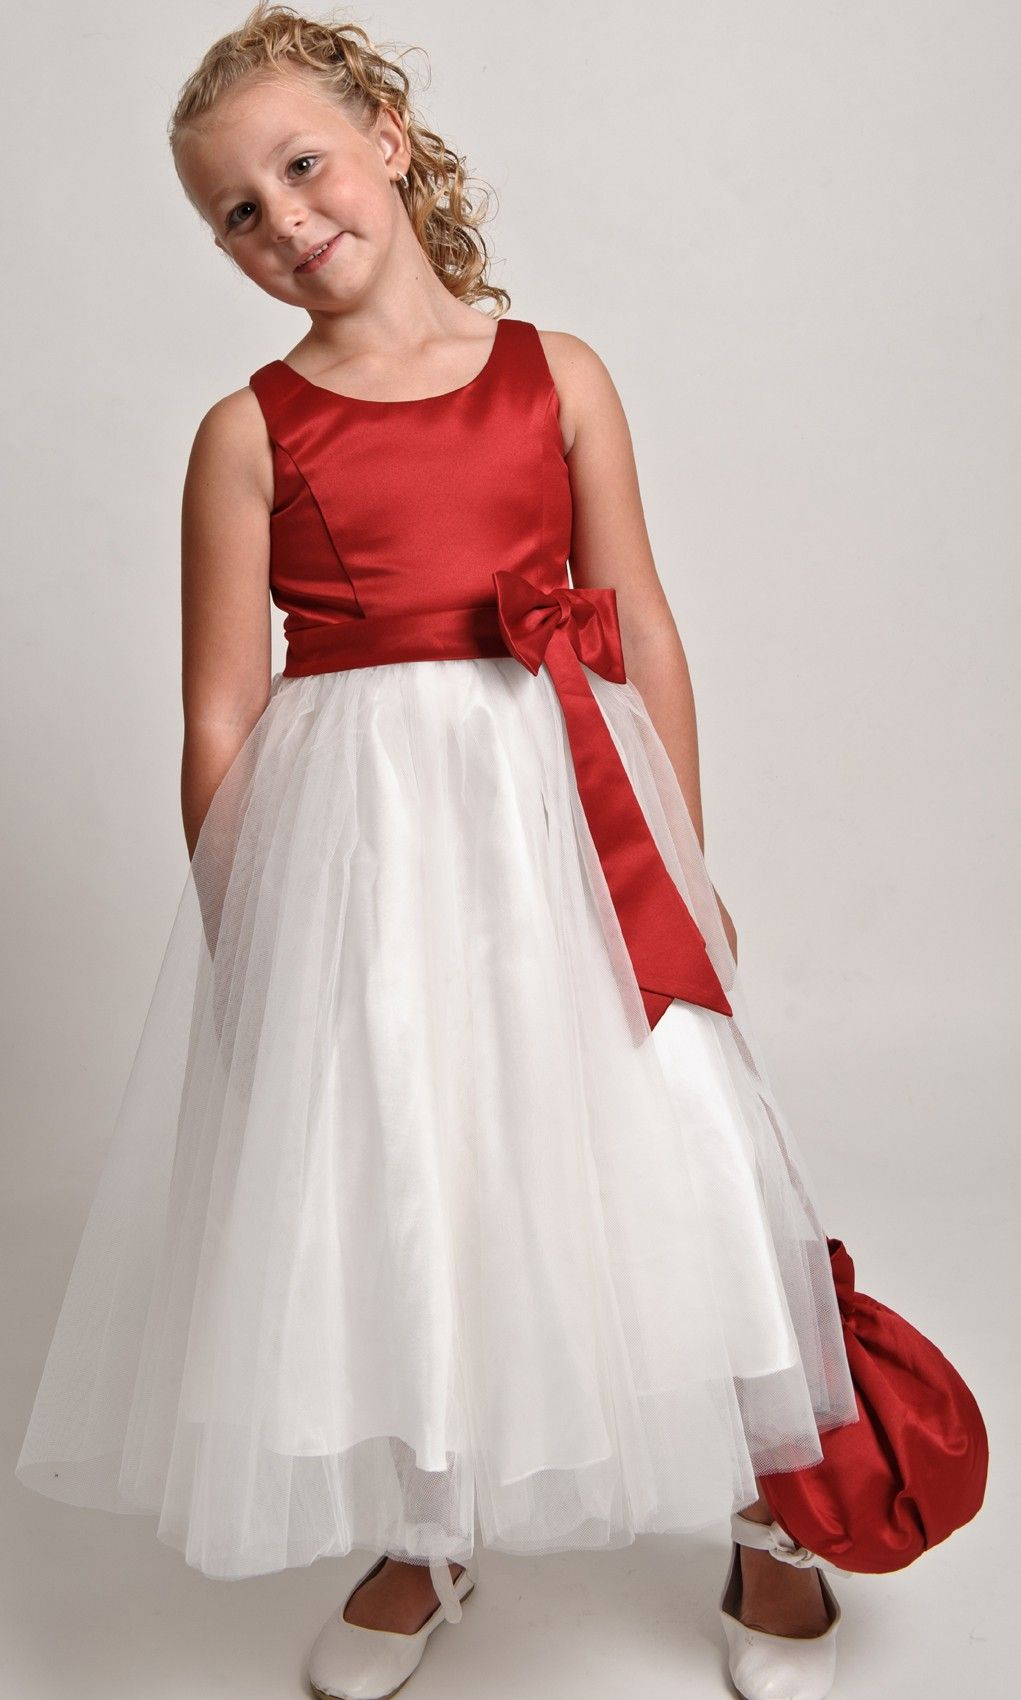 Childrens Flower Girl Dresses Best White Dresses